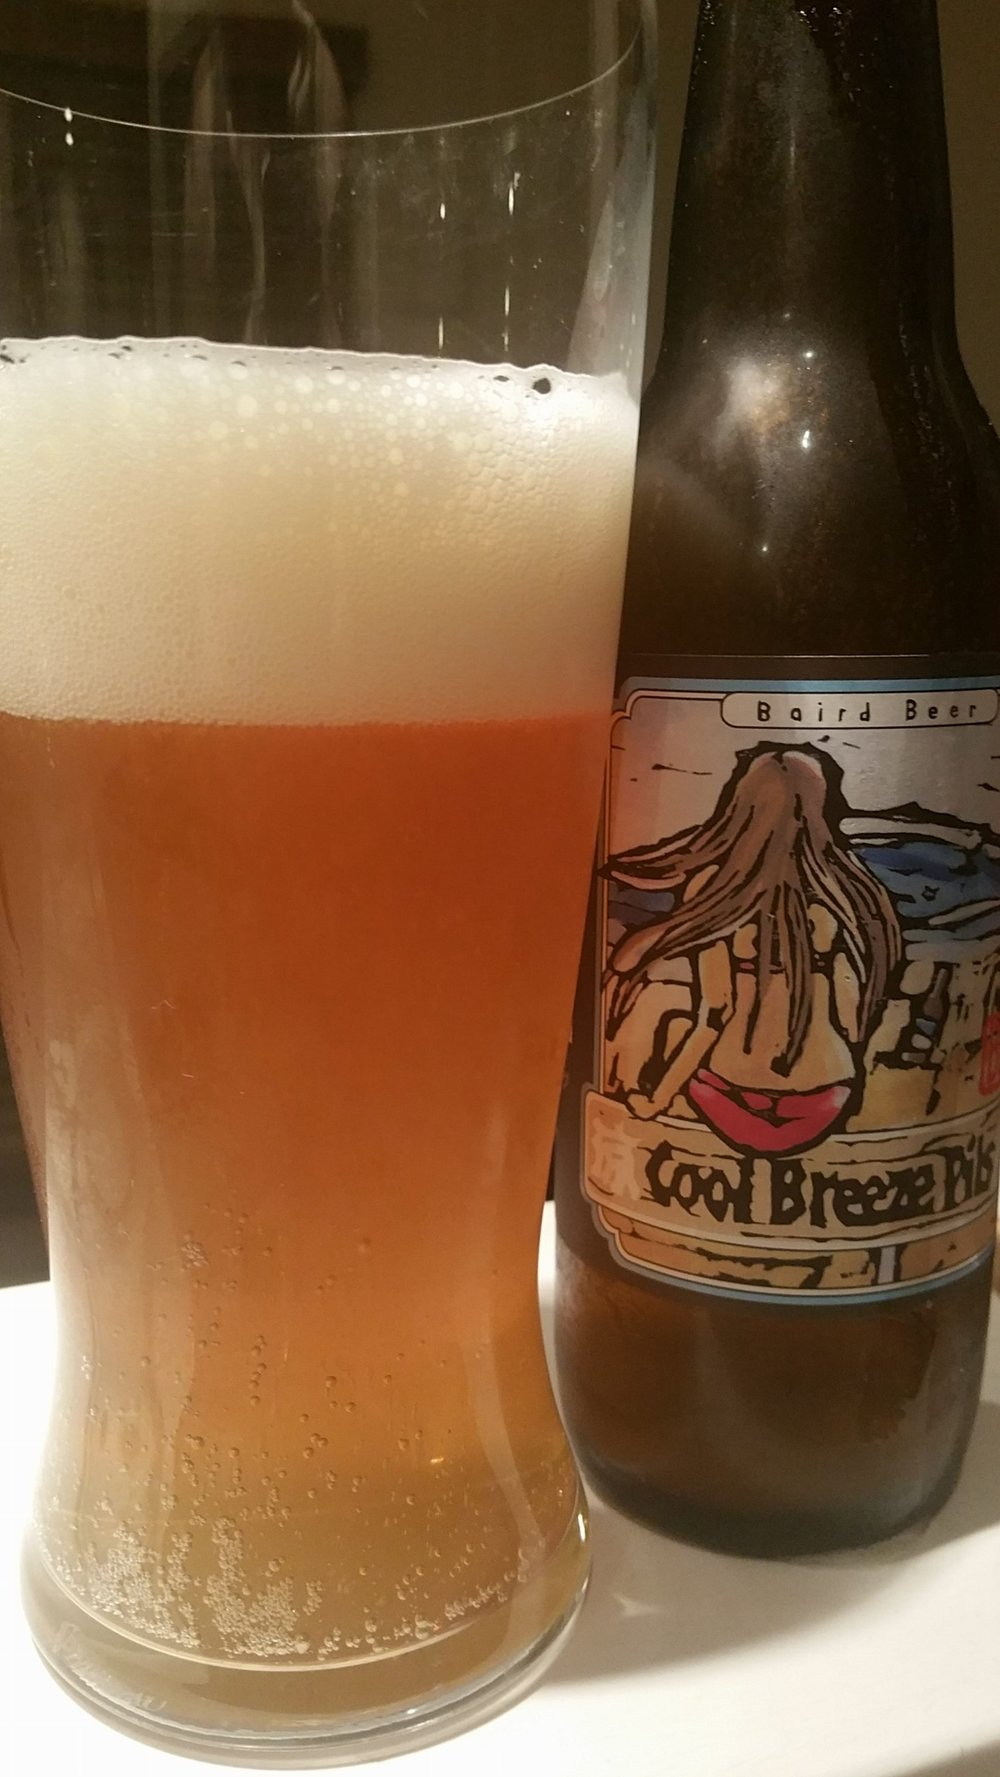 Love_Japan_Baird Beer Cool Breeze Pils.jpg